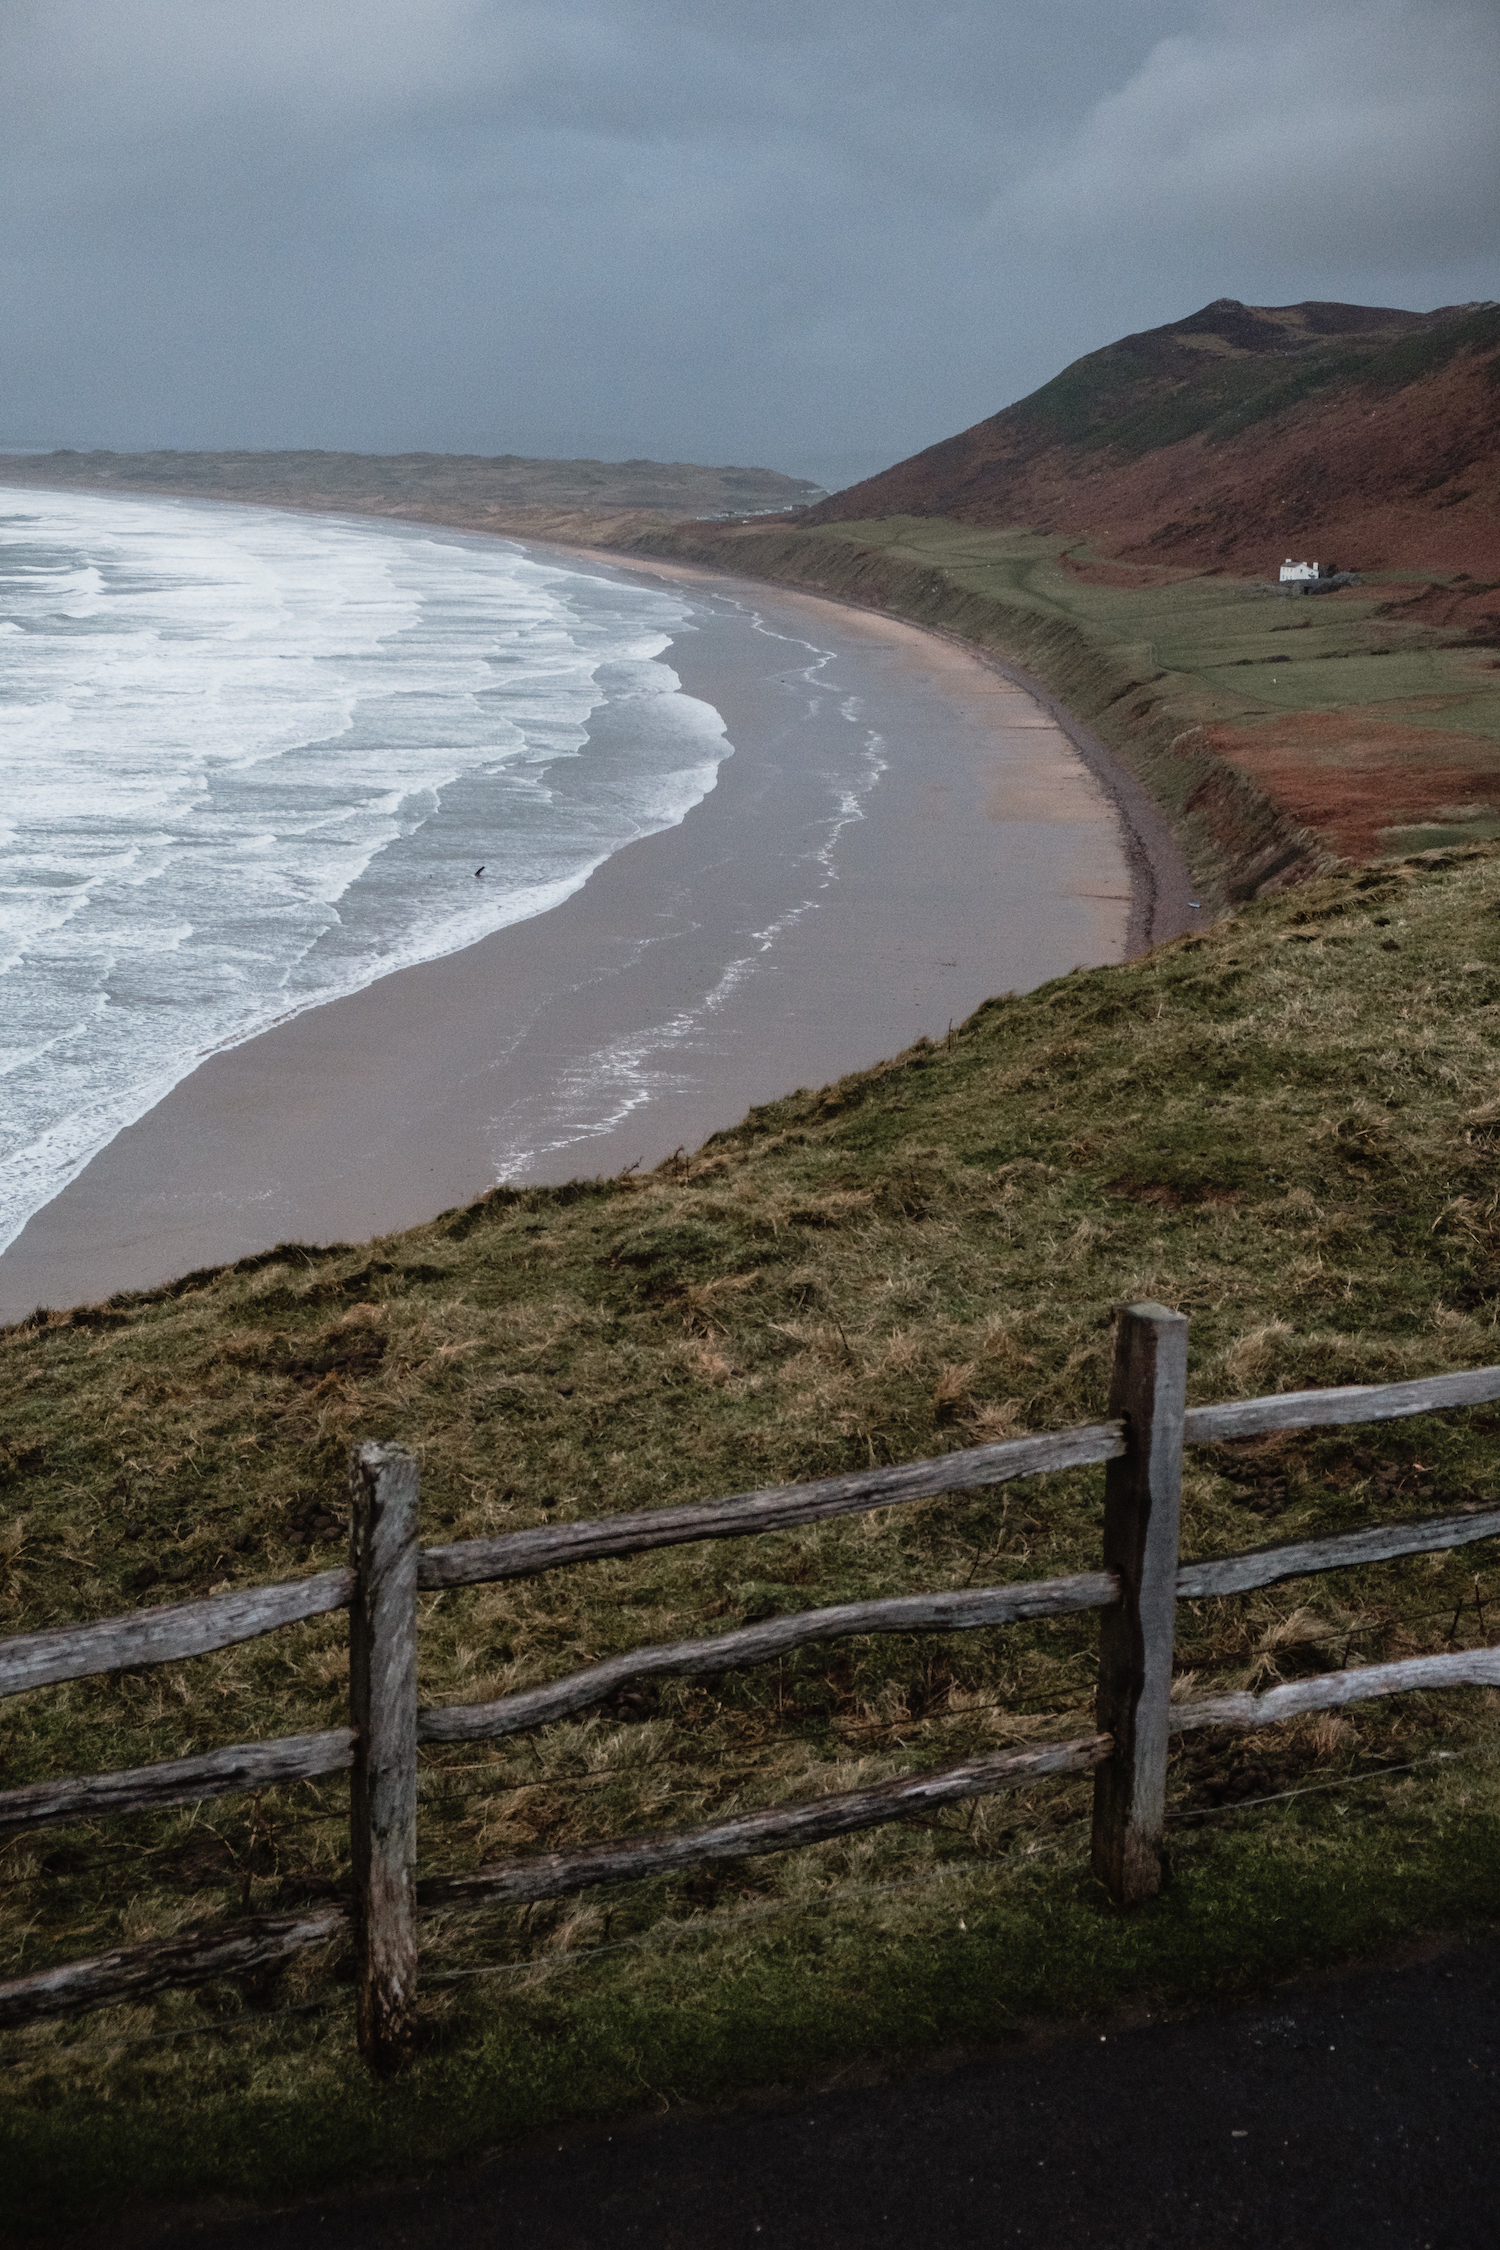 Rhossili Bay (Gower Peninsula, South Wales).